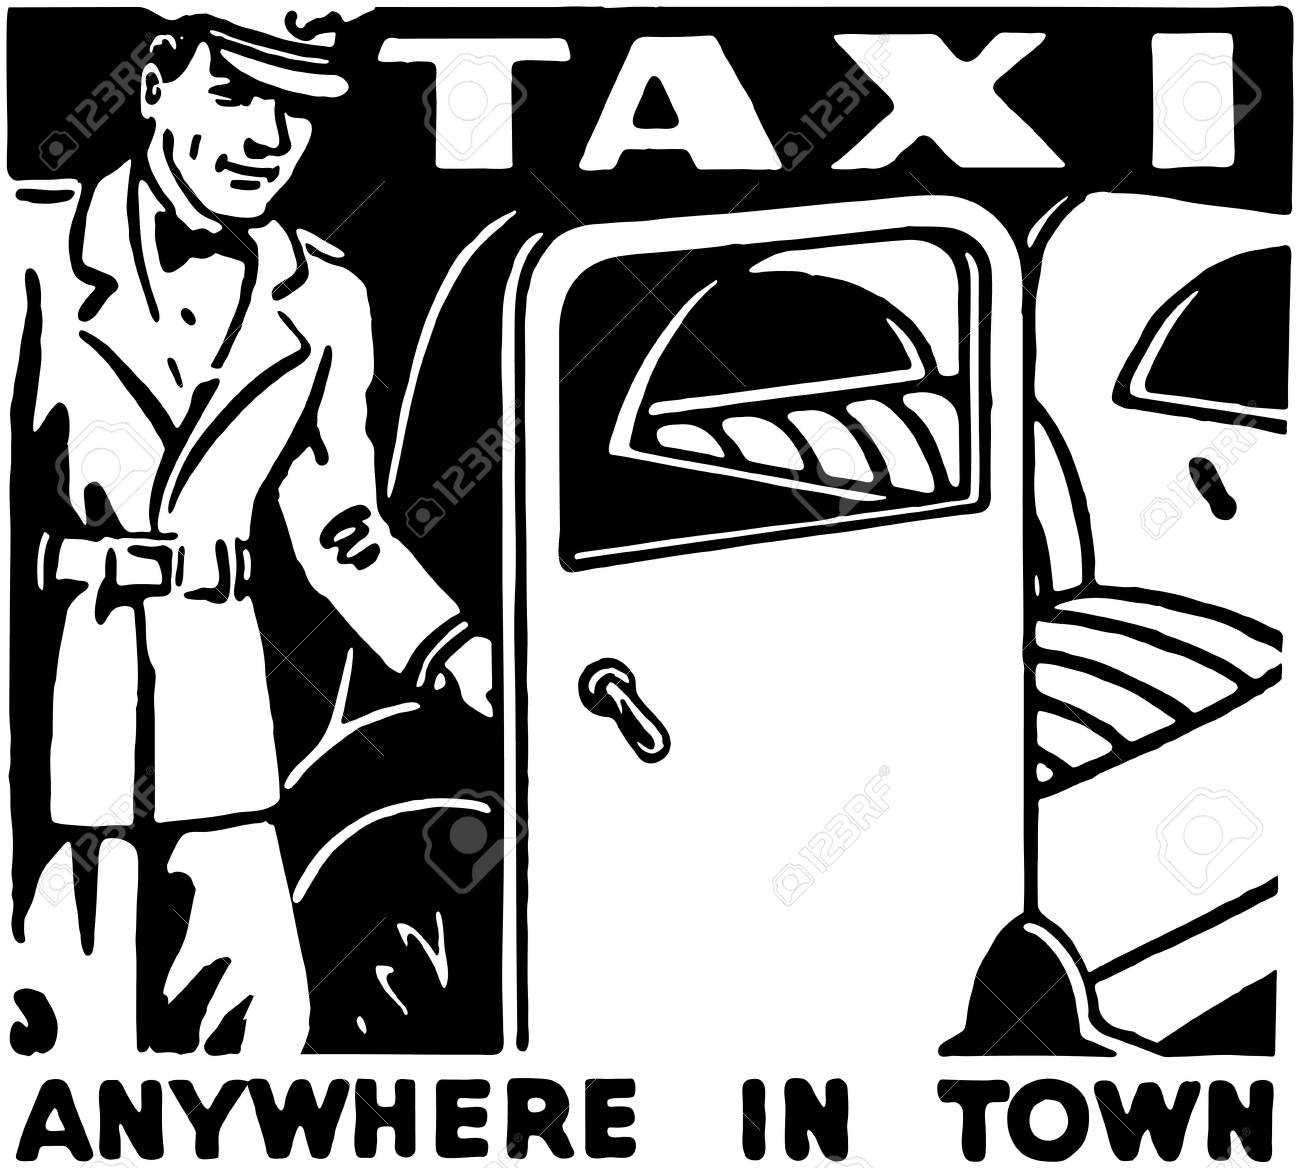 Taxi Anywhere In Town - 28346120